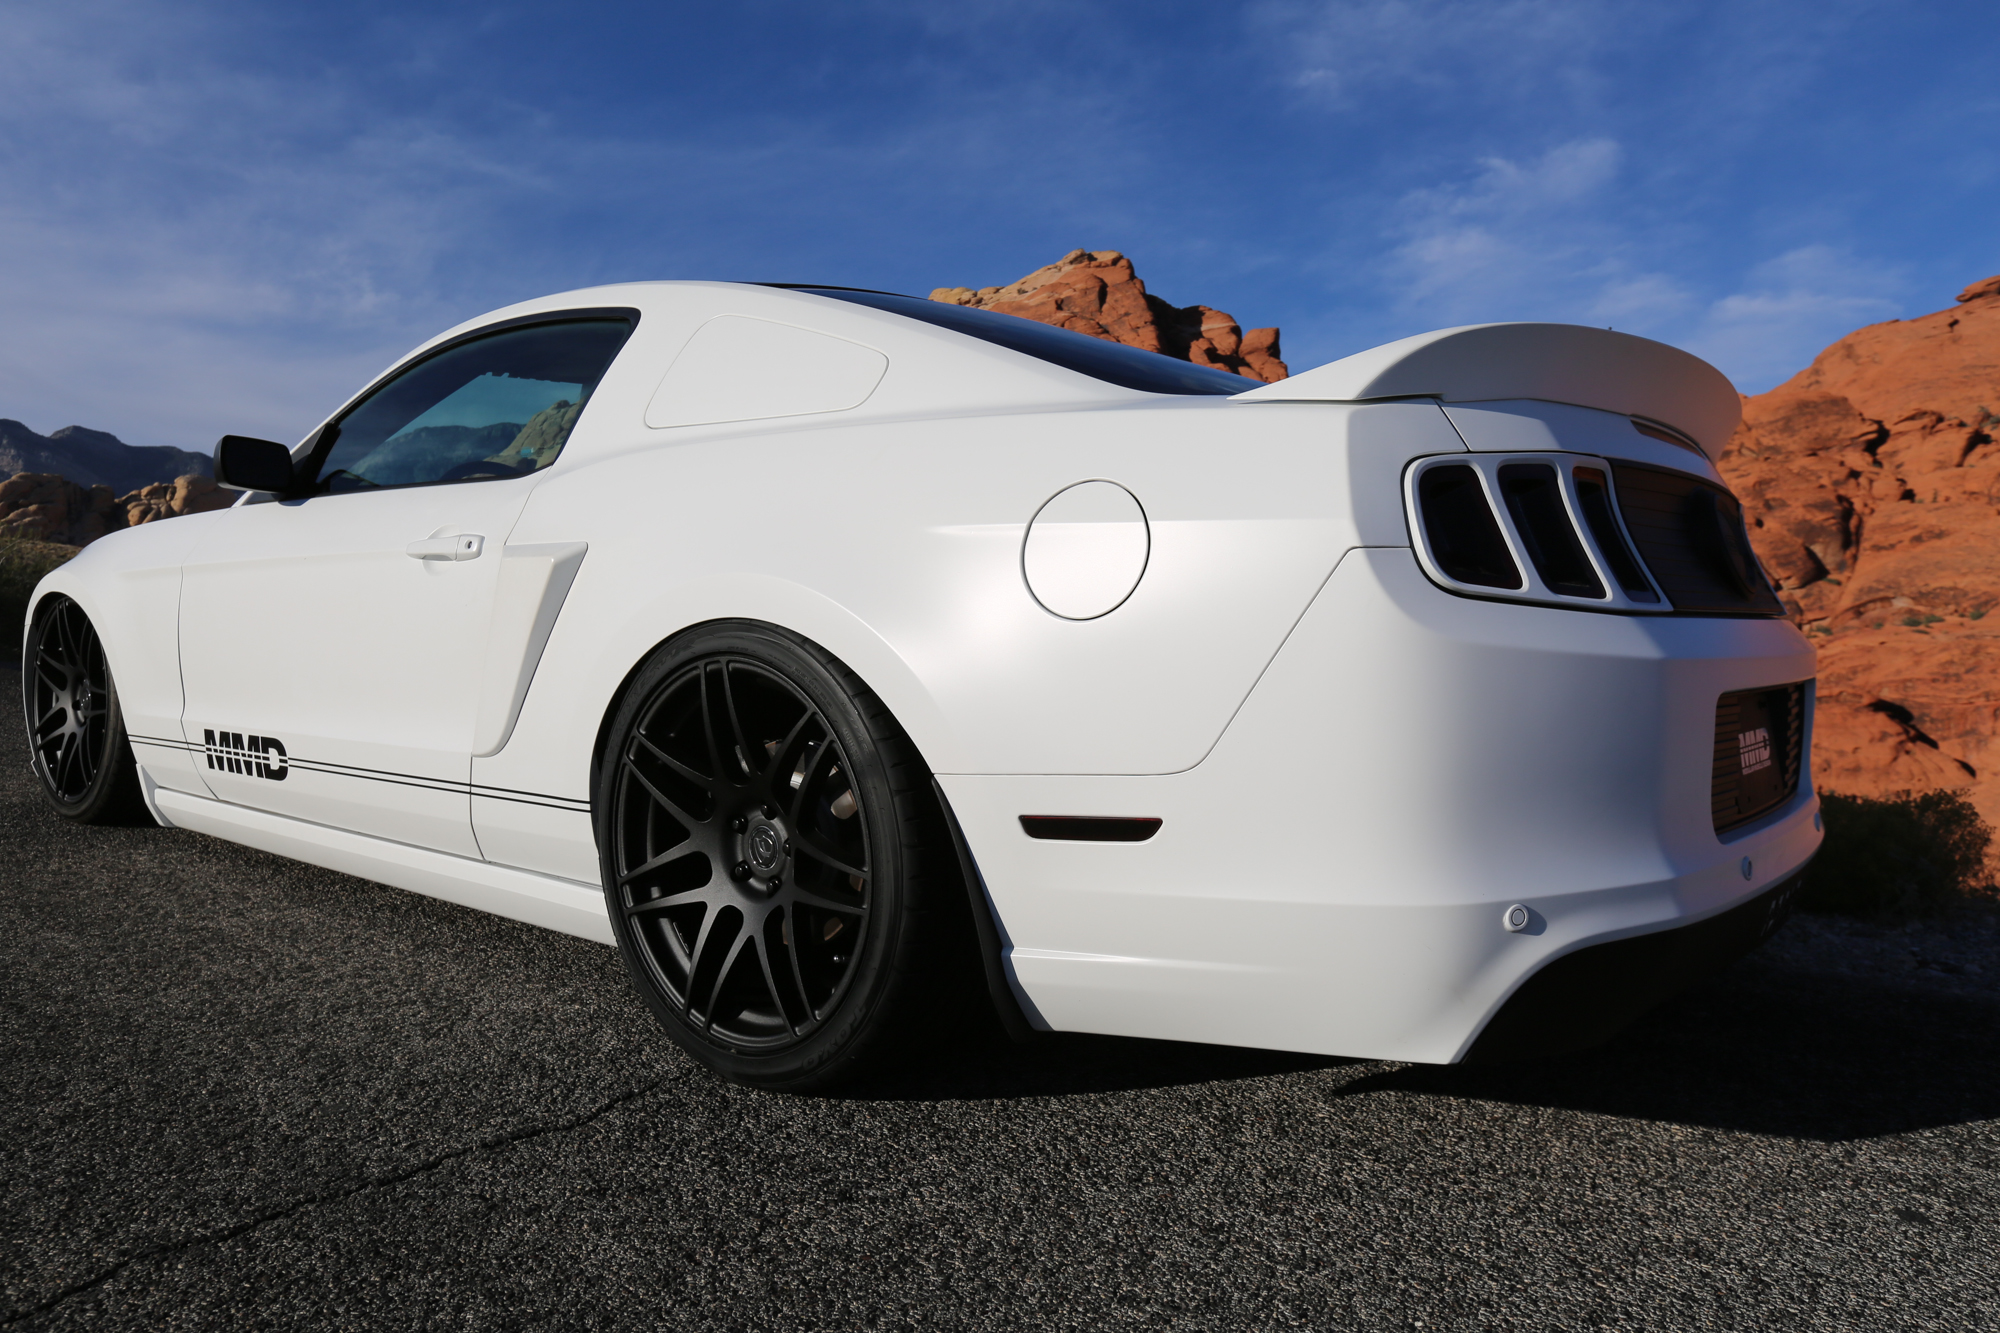 One person will get to drive home from the annual americanmuscle car show the largest mustang only car show on the planet in their newly acquired magazine